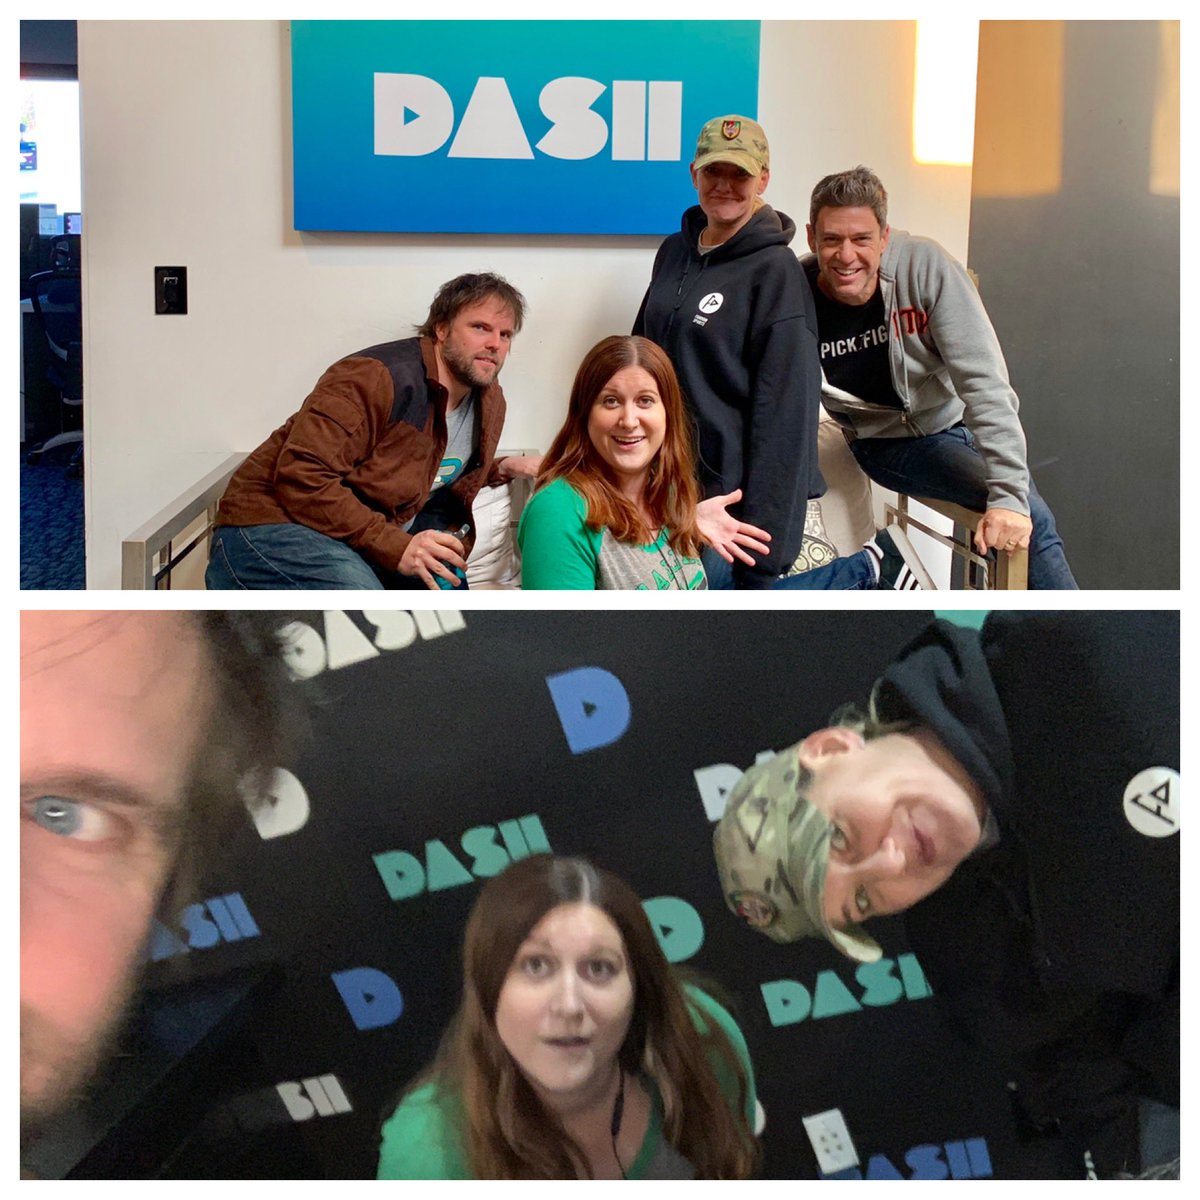 We're ON & with special guest @lacretialyon who has choice words about her @DallasStars...@jenmurphycomedy picks a spot-on #douchekazoo of the week, and @eddiepence loses it...again re: his @Redskins TUNE IN! @dash_radio https://t.co/QfgZvS6ZAs @FandomSportsApp #pickafight https://t.co/52bFkL3XhA